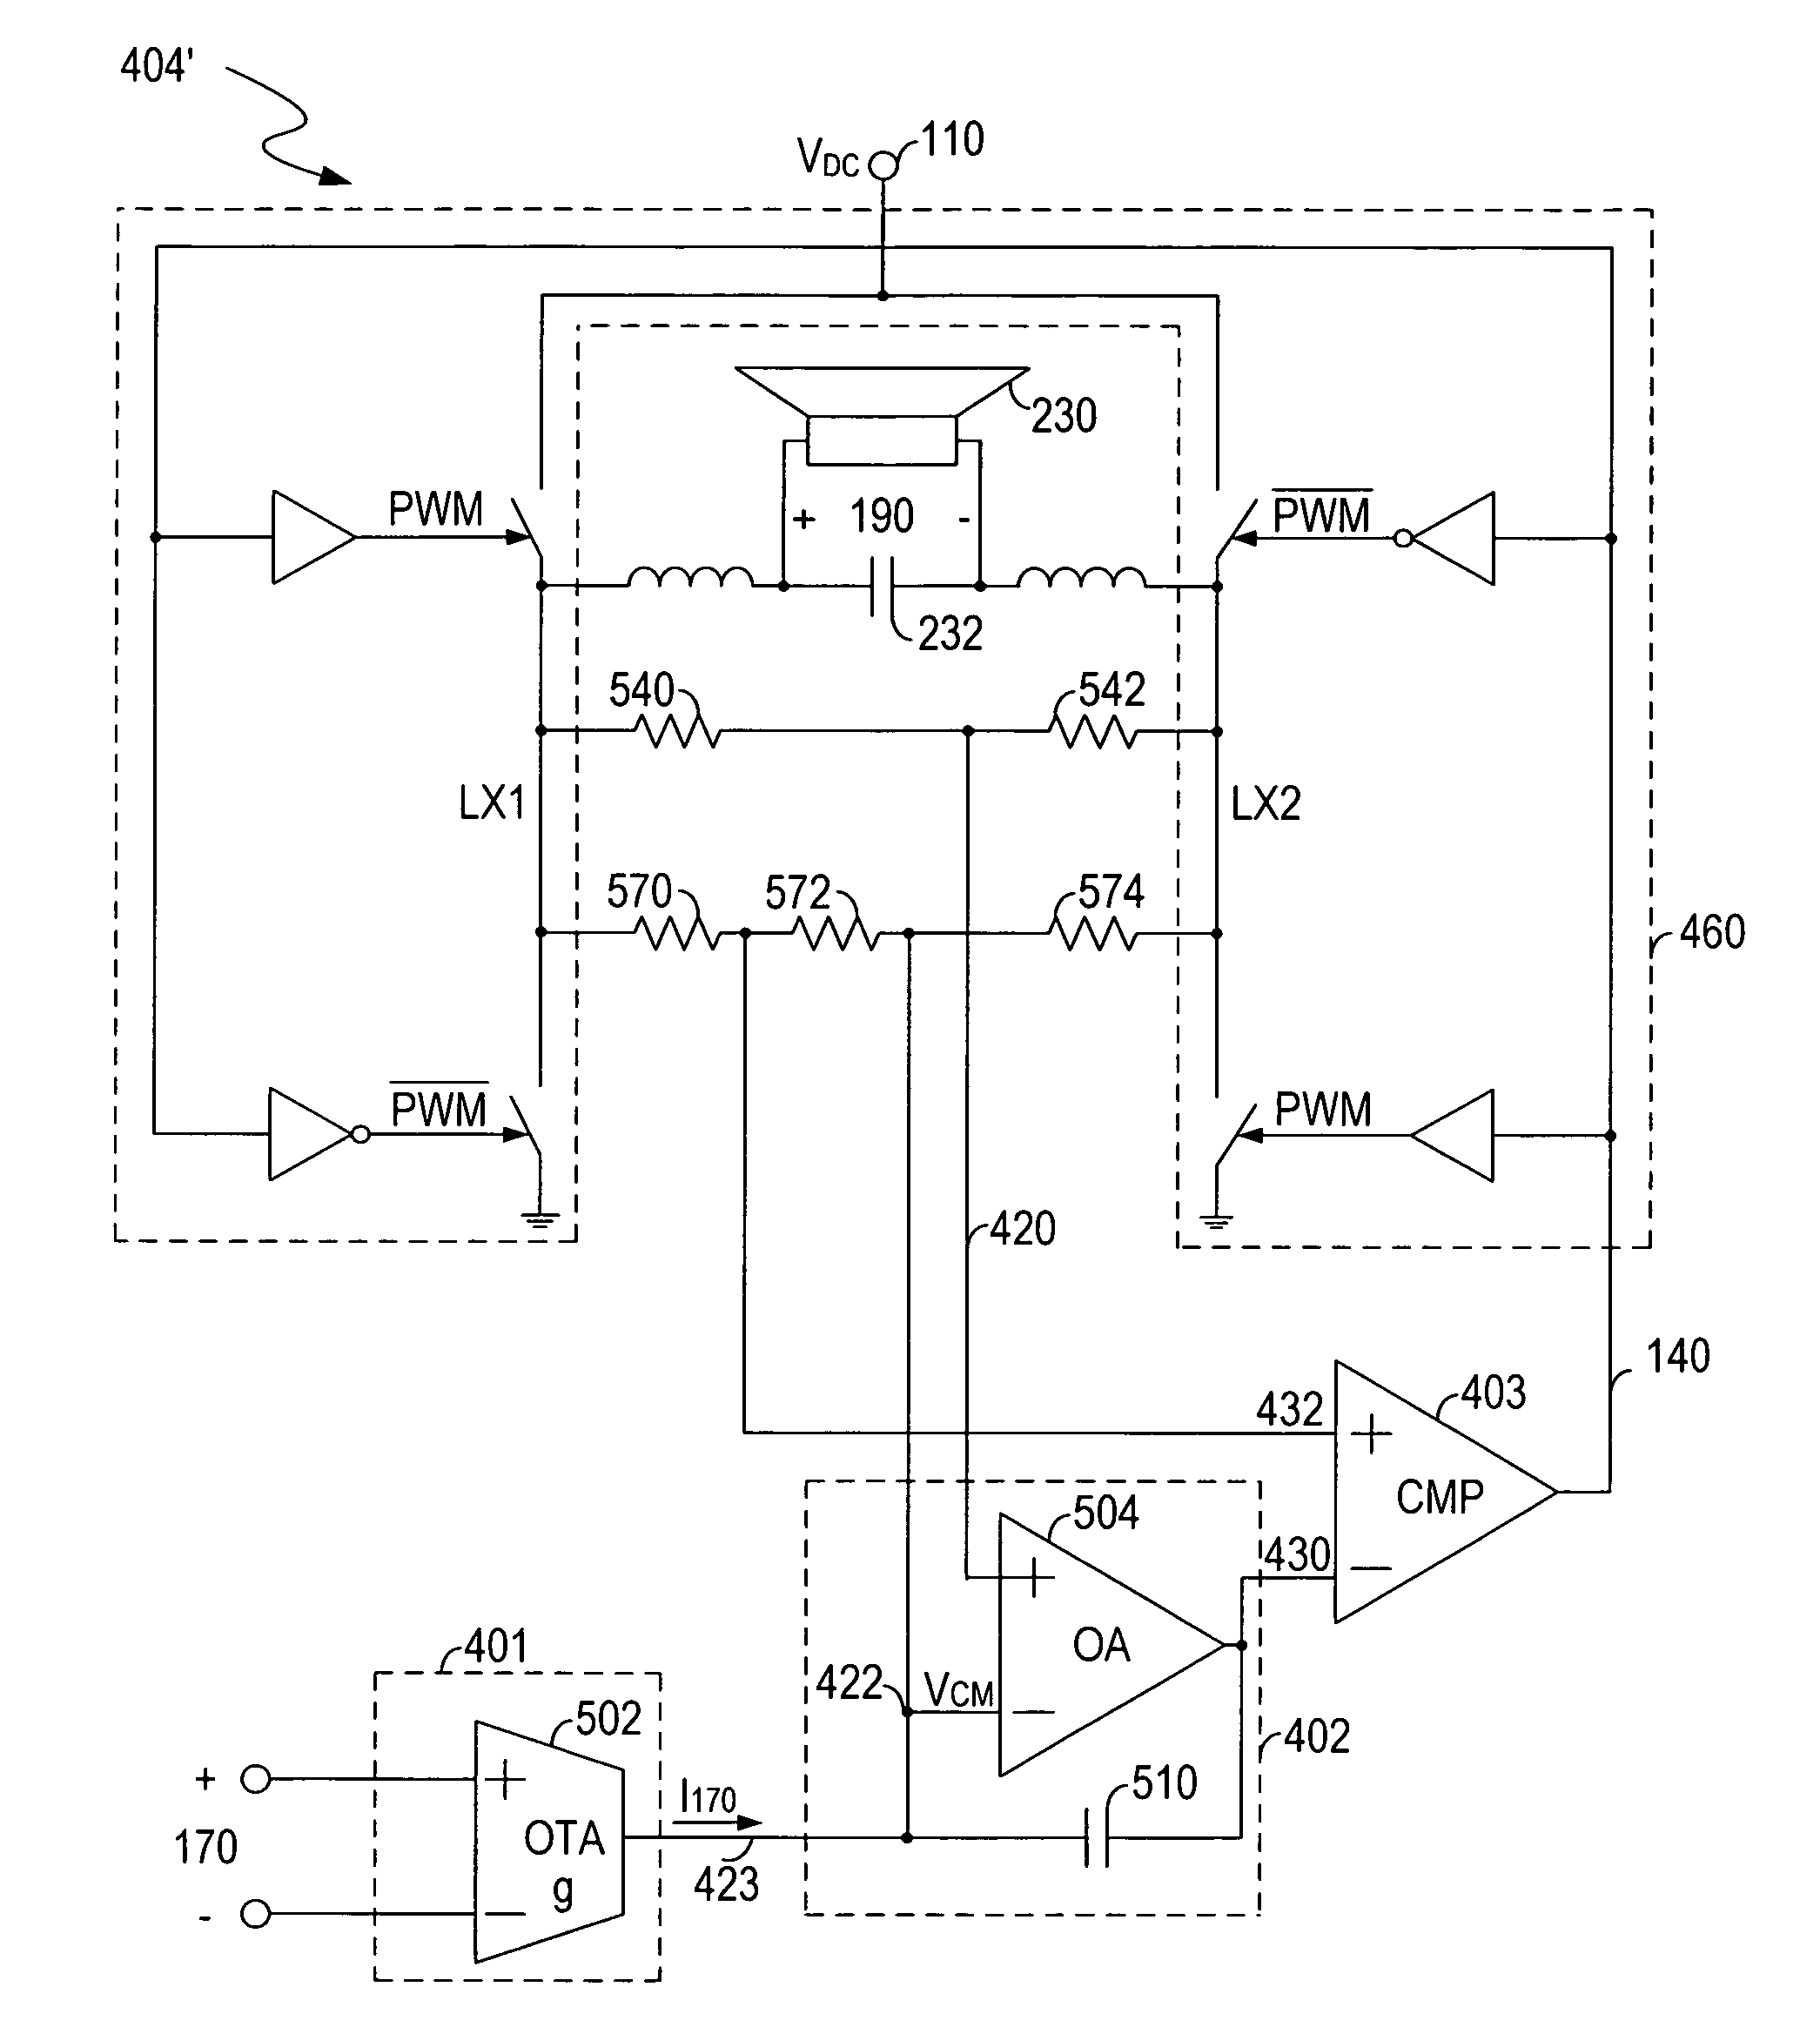 Analytics For Us Patent No 7501886 Low Distortion Class D Amplifier Circuit Diagram The Full Bridge Coupled To Comparison Stage Is Used Receiving A Power Supply And Pulse Width Modulation Signal Generating